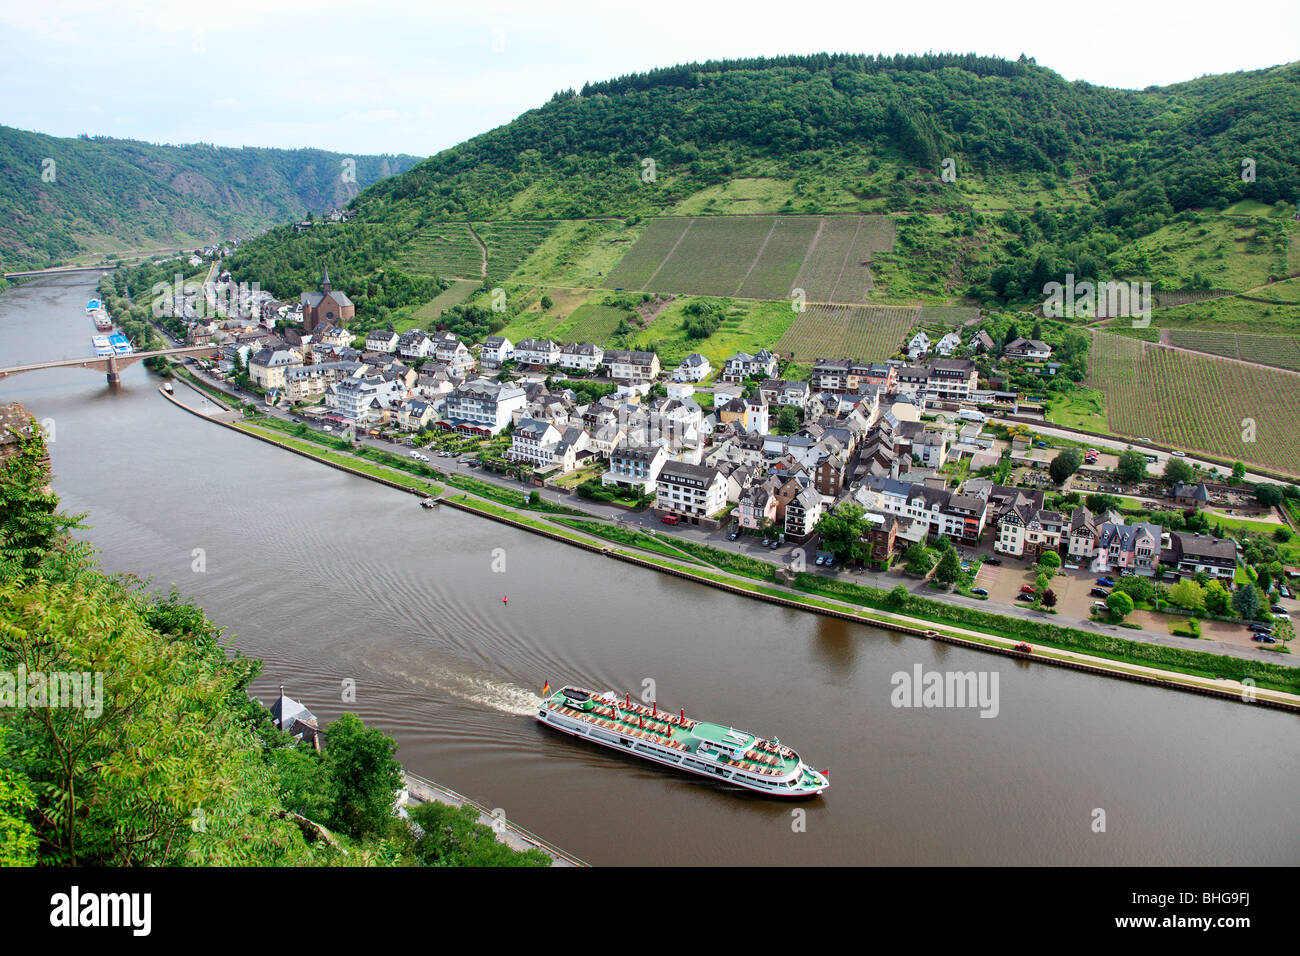 A tour boat on the rhine - Stock Image